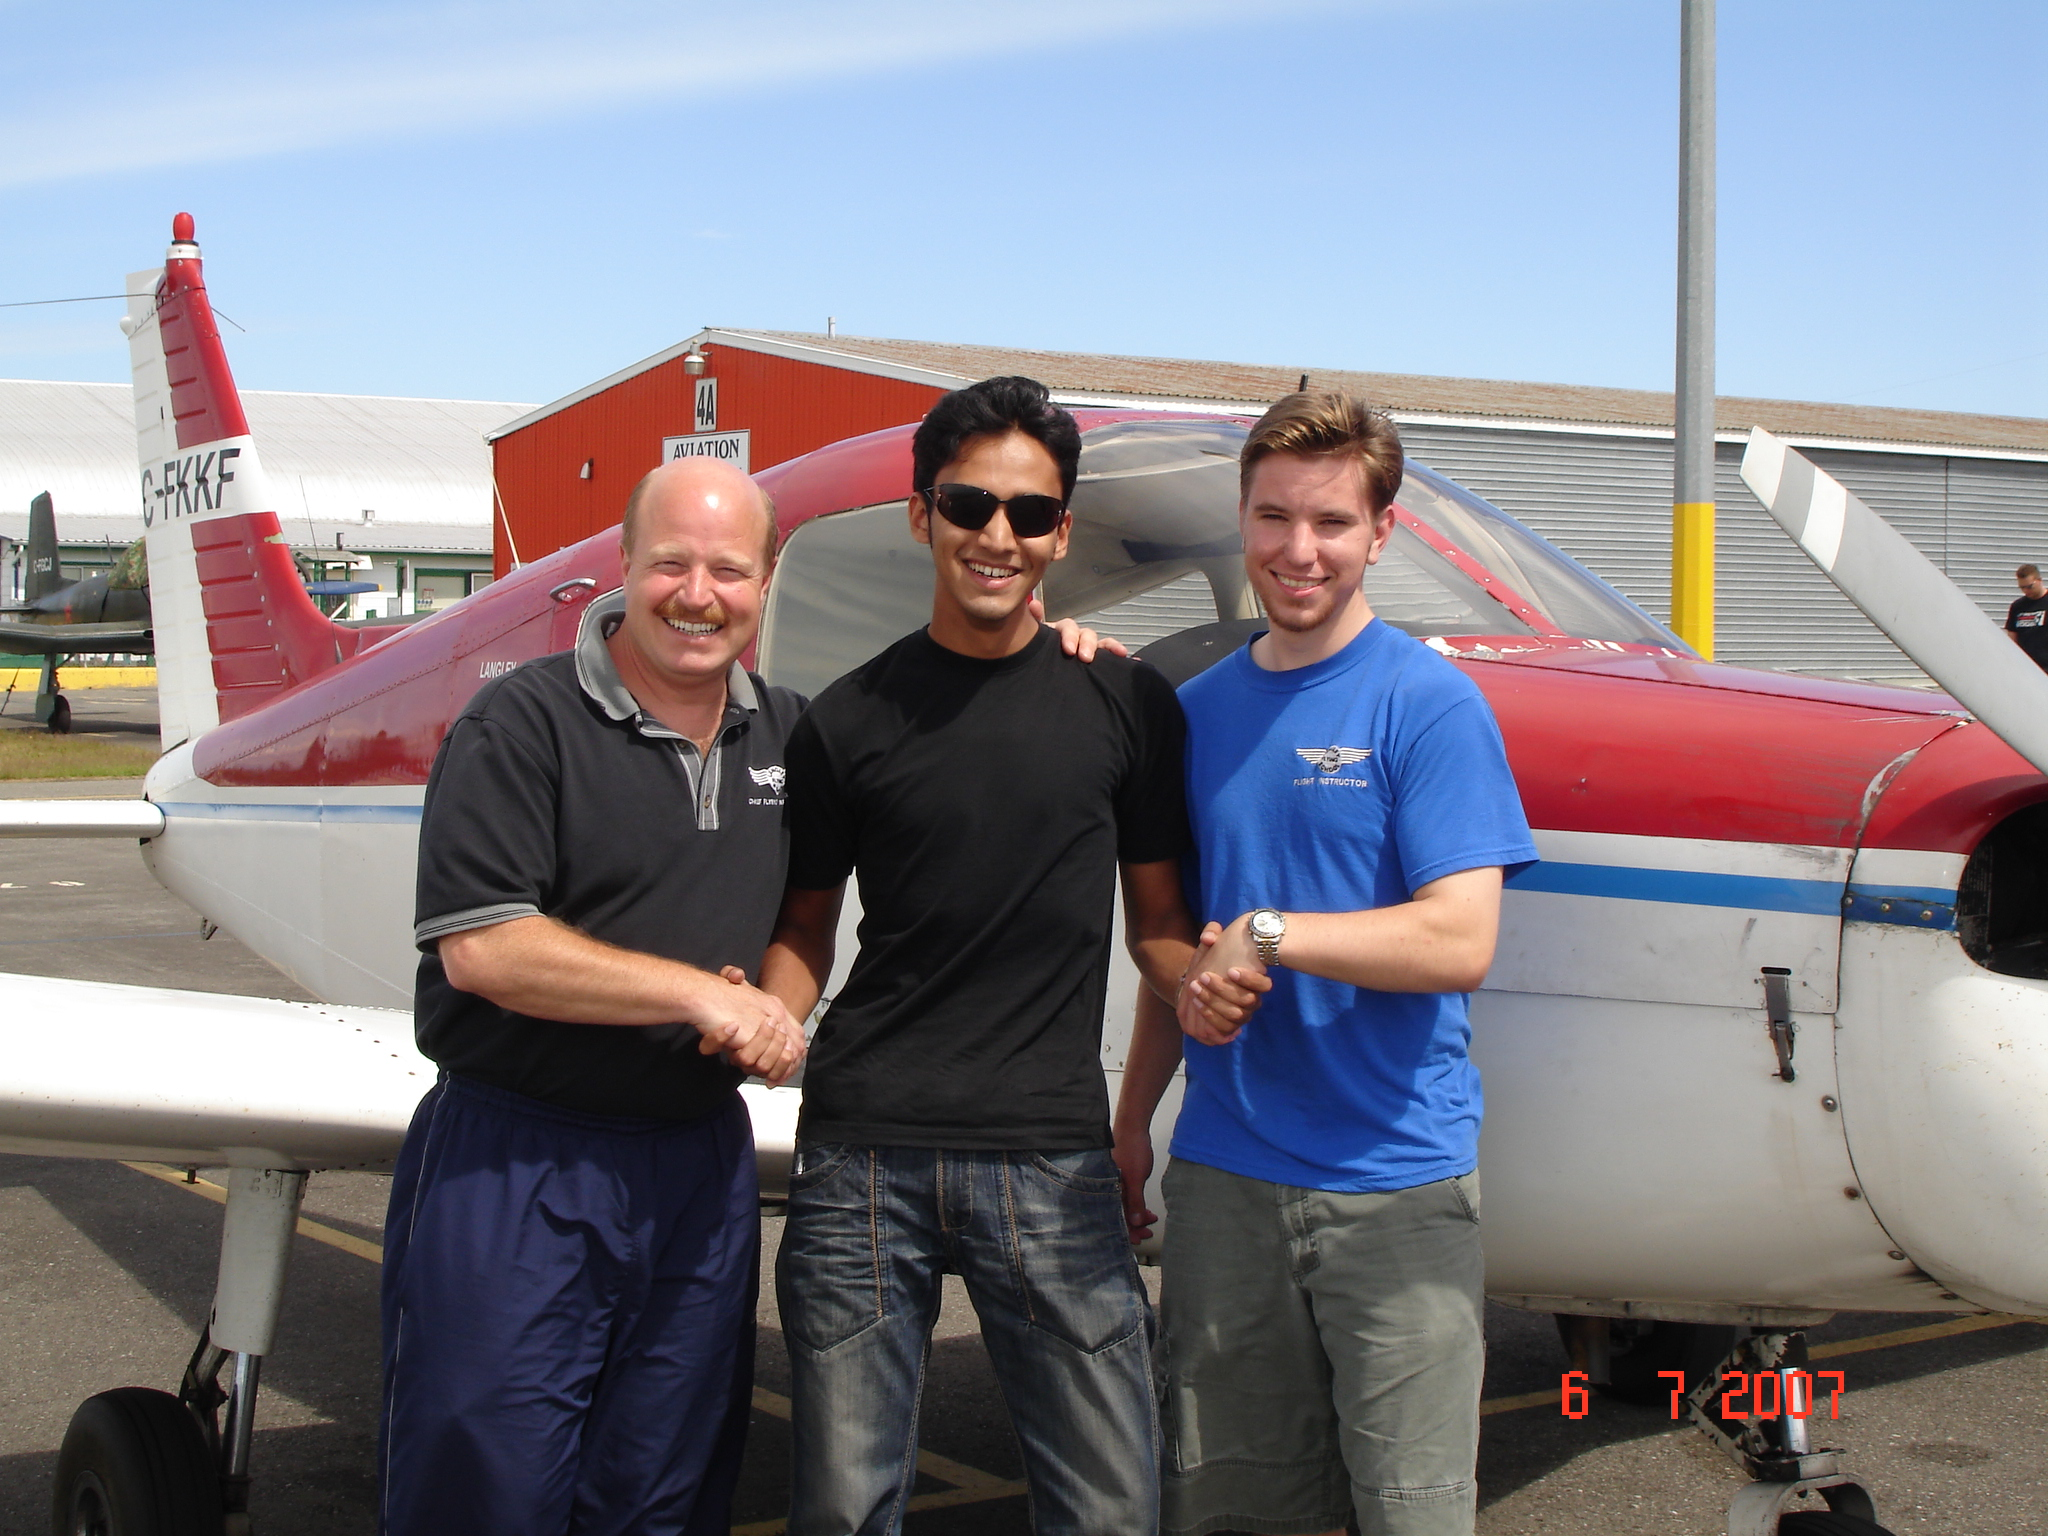 Naif Malvankar with David Parry and Philip Craig after the successful completion of his Private Pilot Flight Test, Langley Flying School